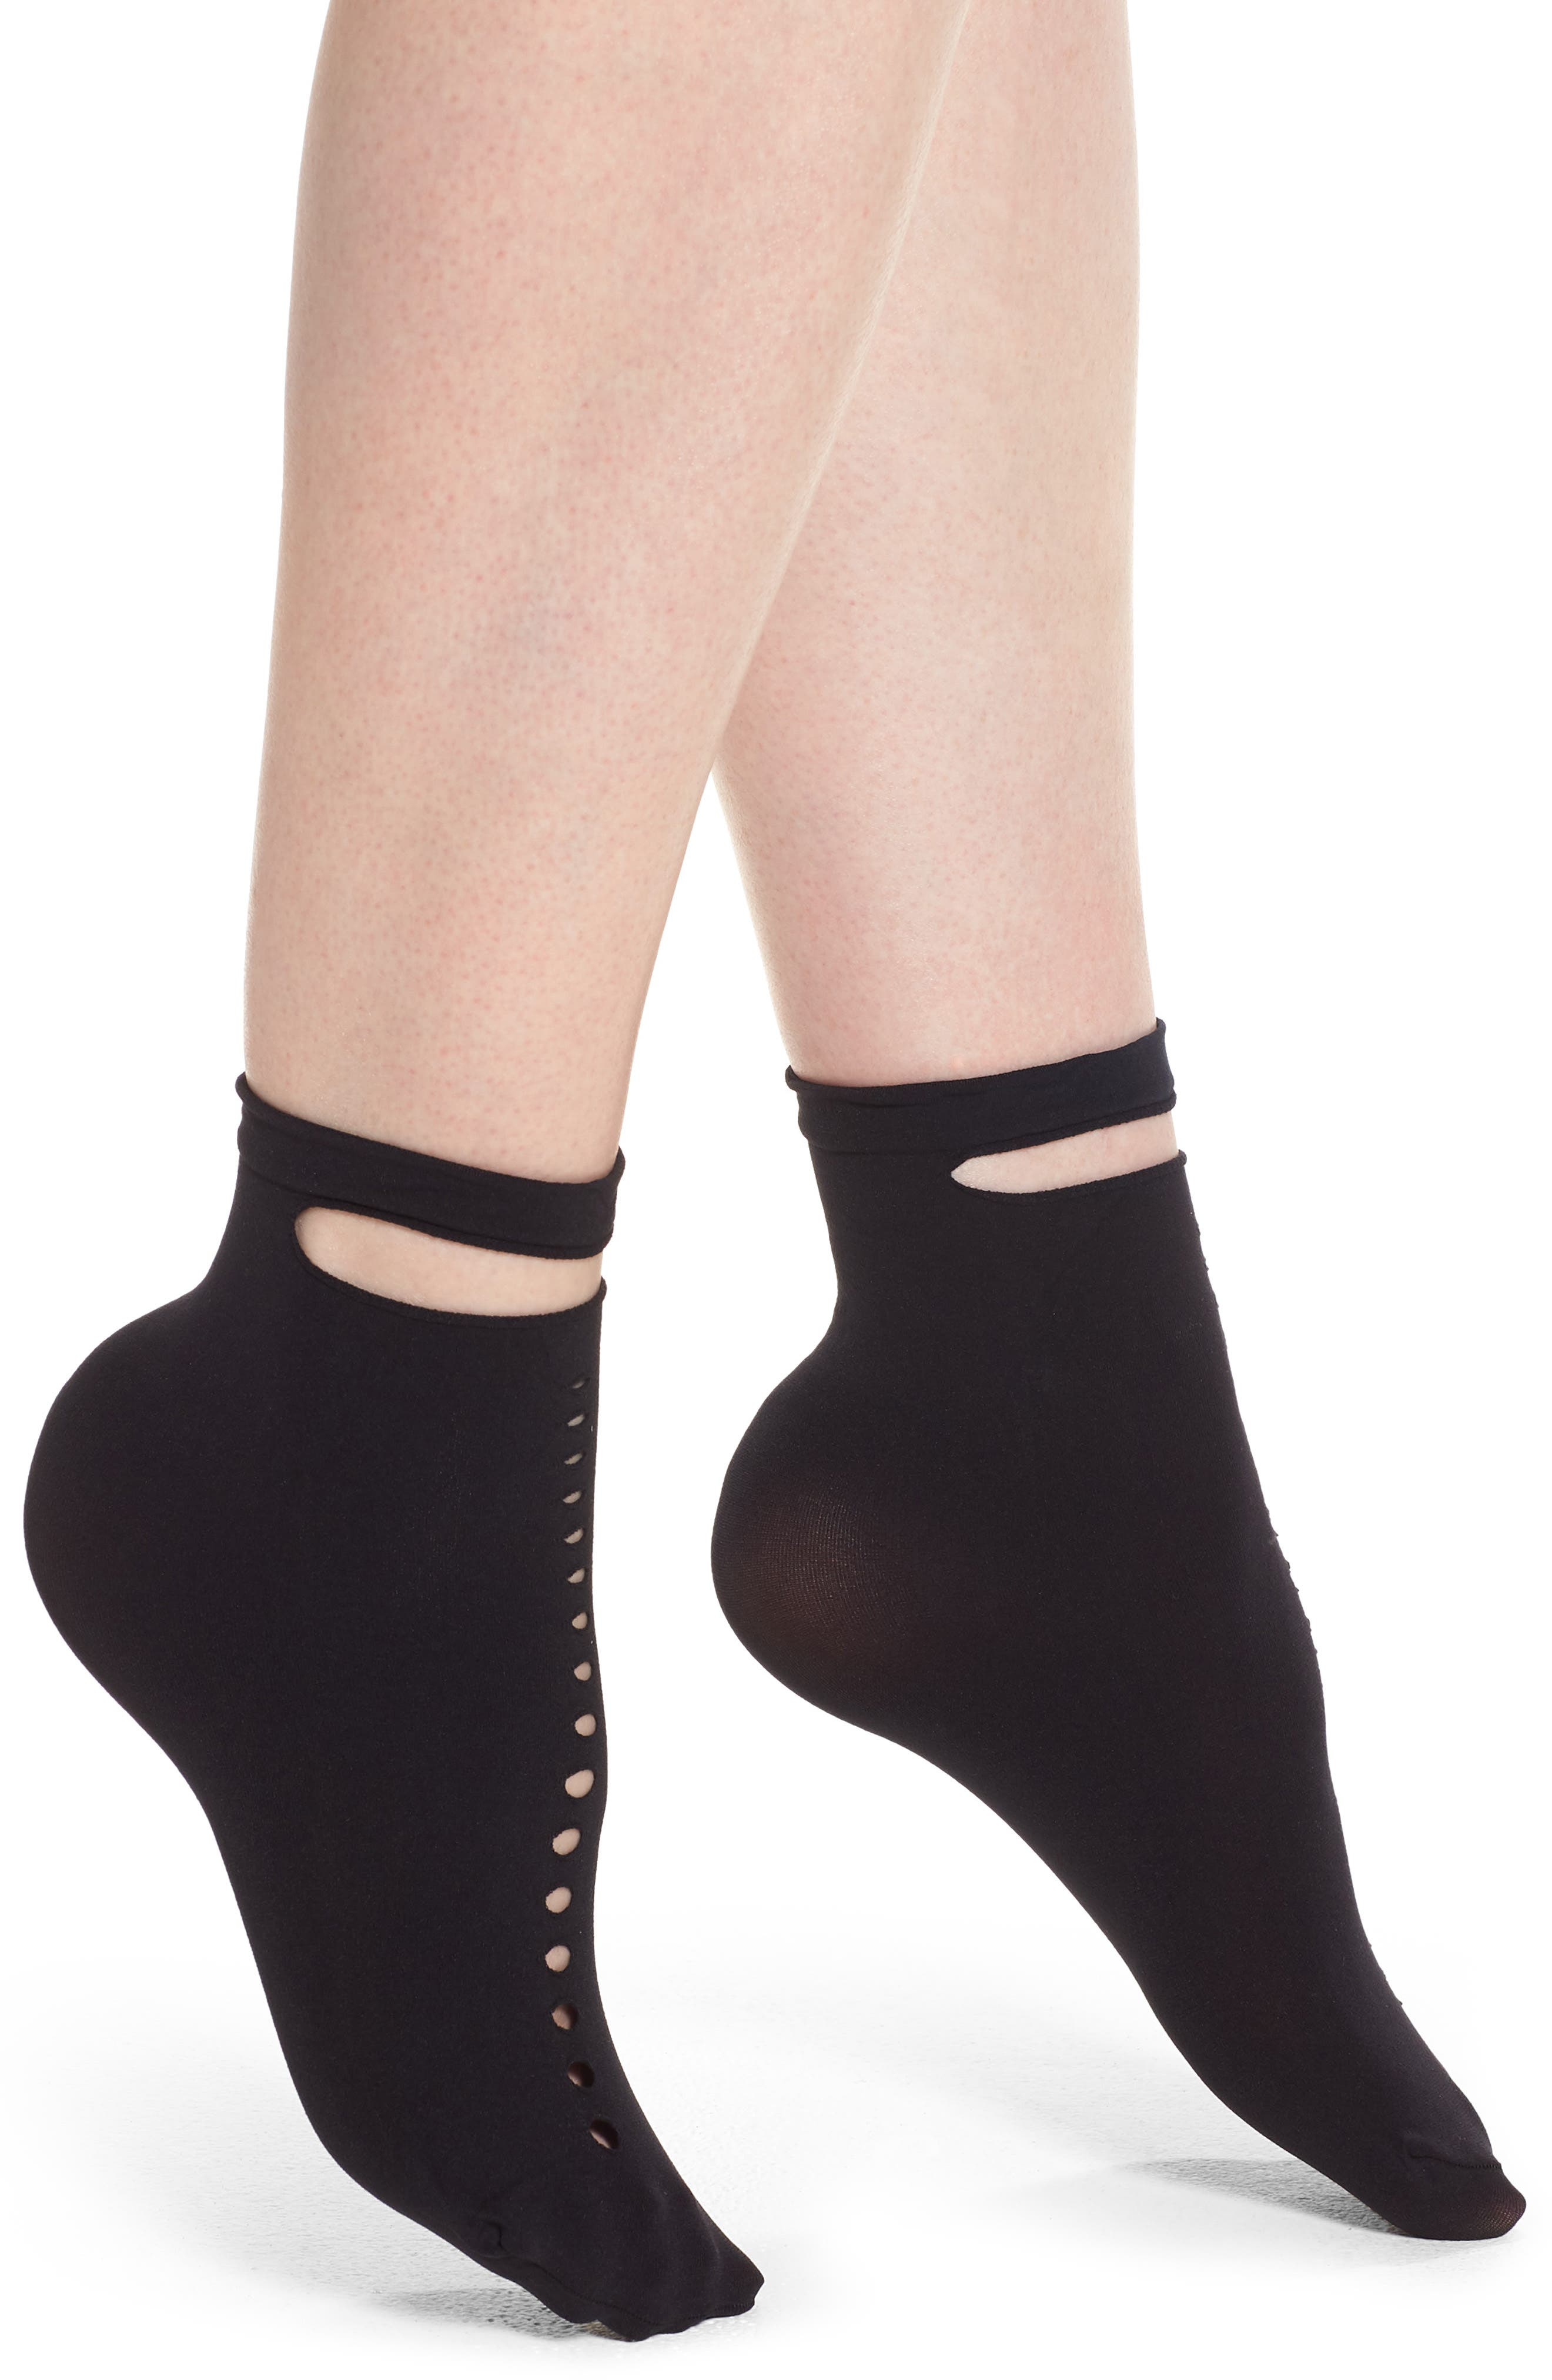 Calzino Abstract Belted Ankle Socks,                             Main thumbnail 1, color,                             Black